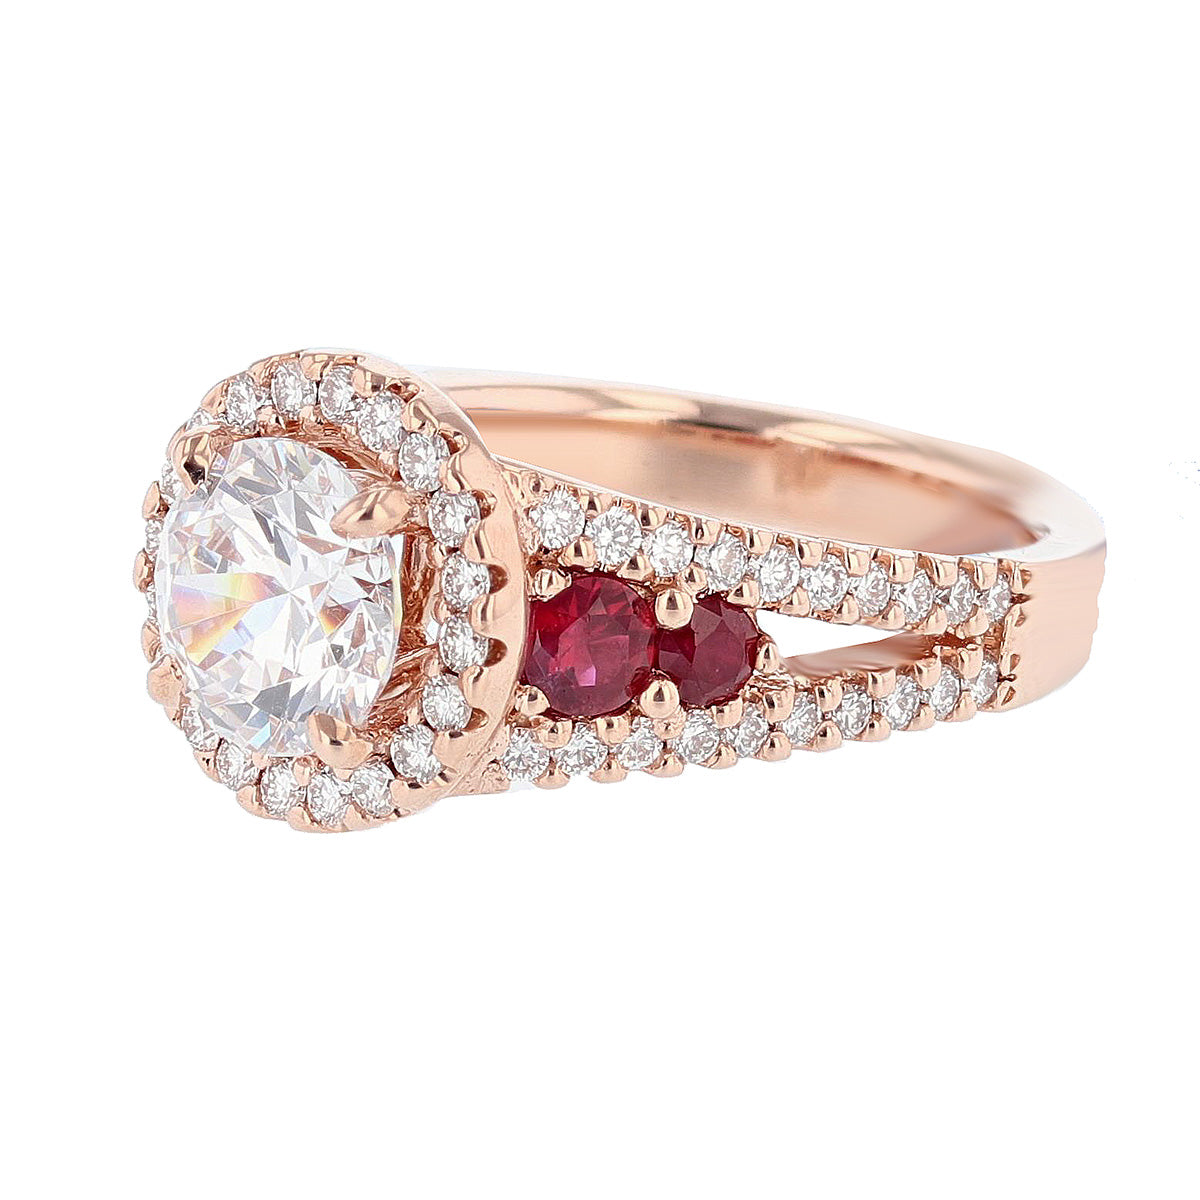 14K Rose Gold Round Diamond and Ruby Engagement Ring - Nazarelle